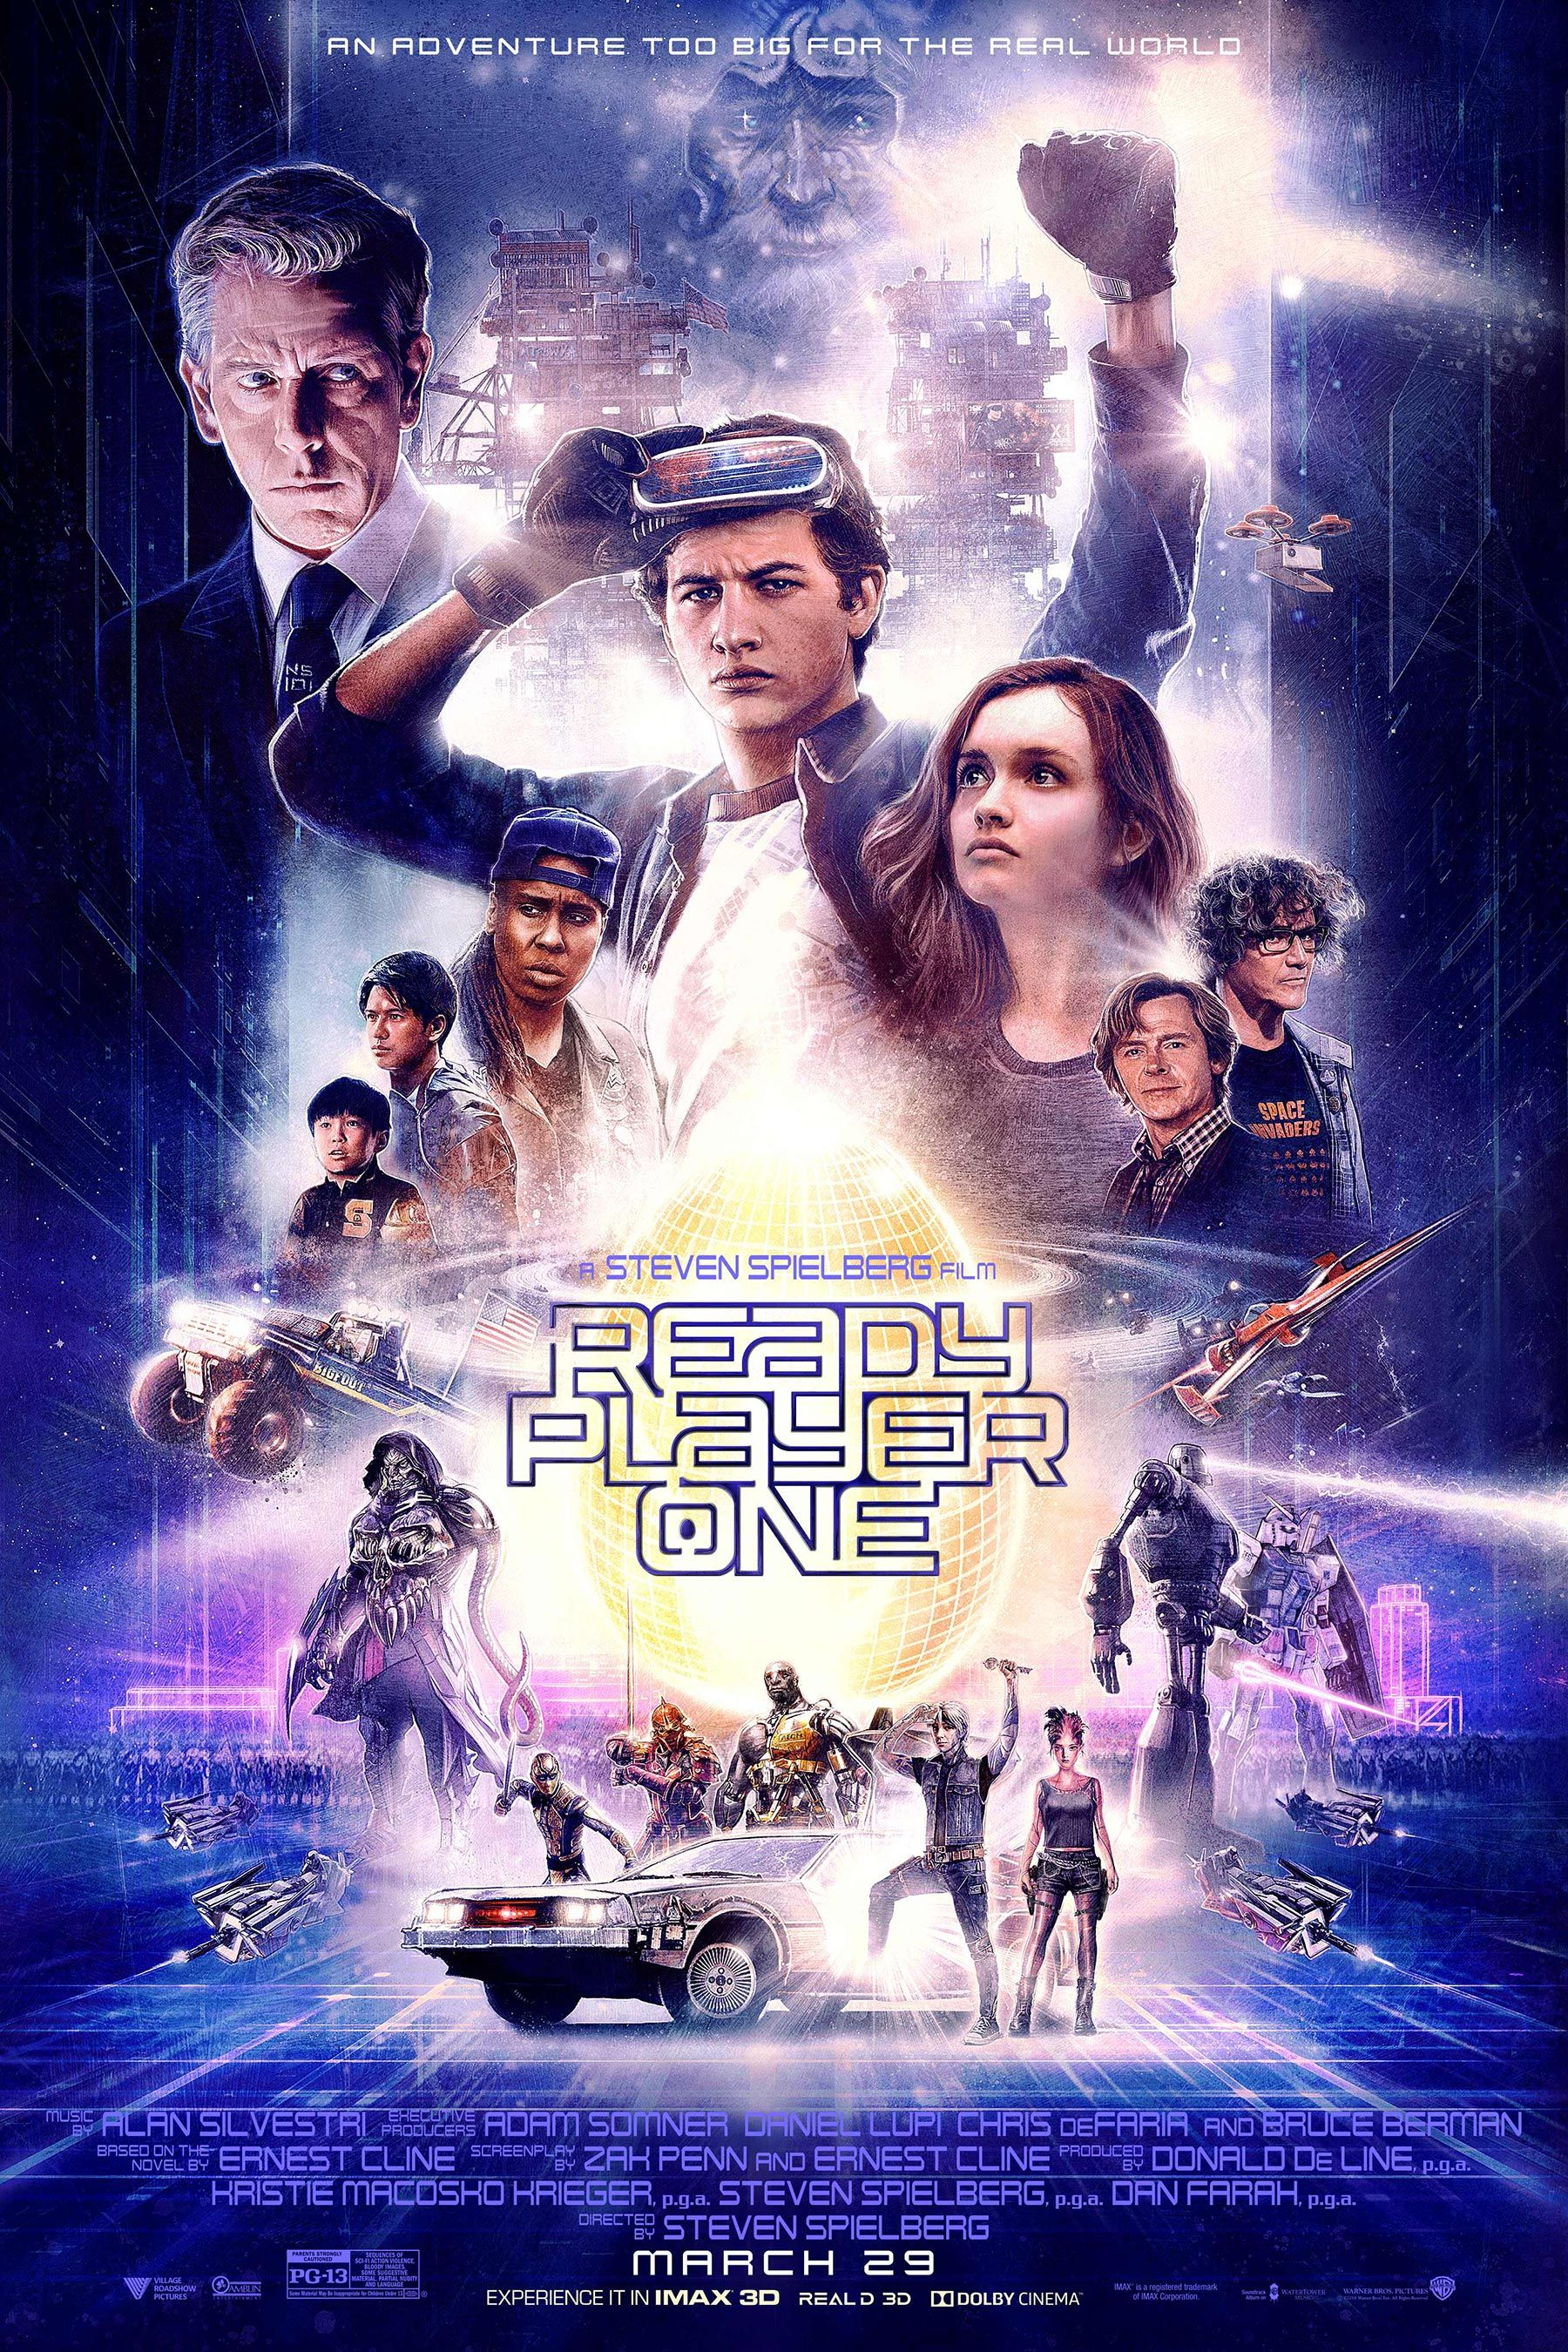 Tye Sheridan Goes Back To The Future In Totally 80s Ready Player One Poster Ready Player One Movie Ready Player One Full Movies Online Free